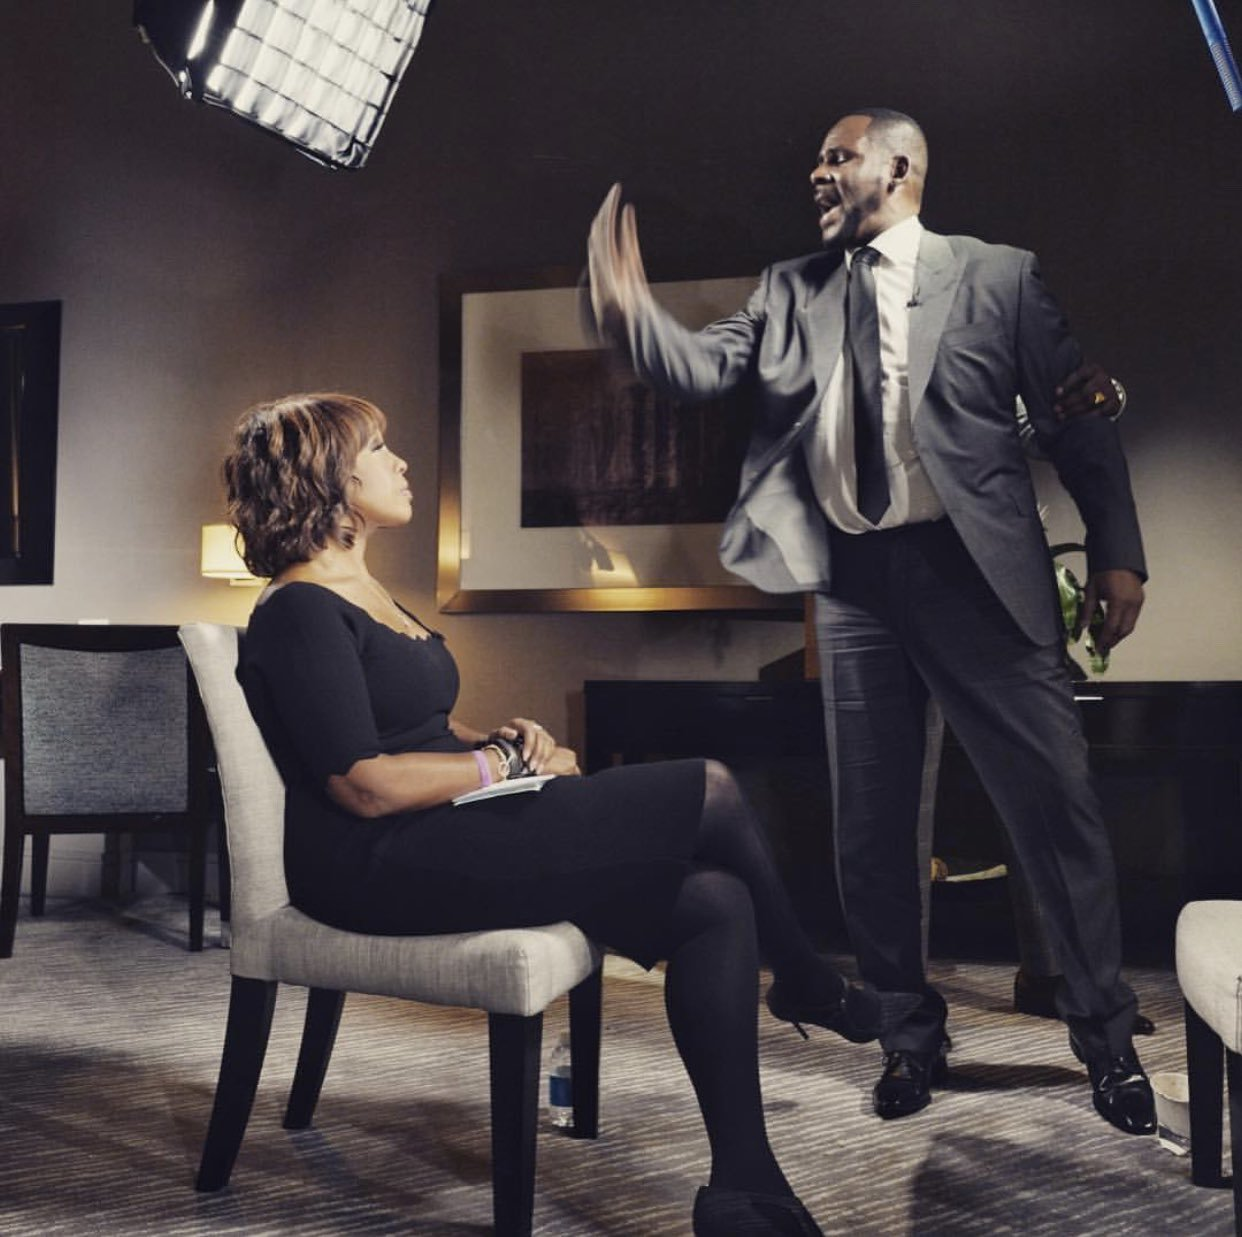 Gayle King worried emotional R Kelly would 'hit her' during shocking CBS interview